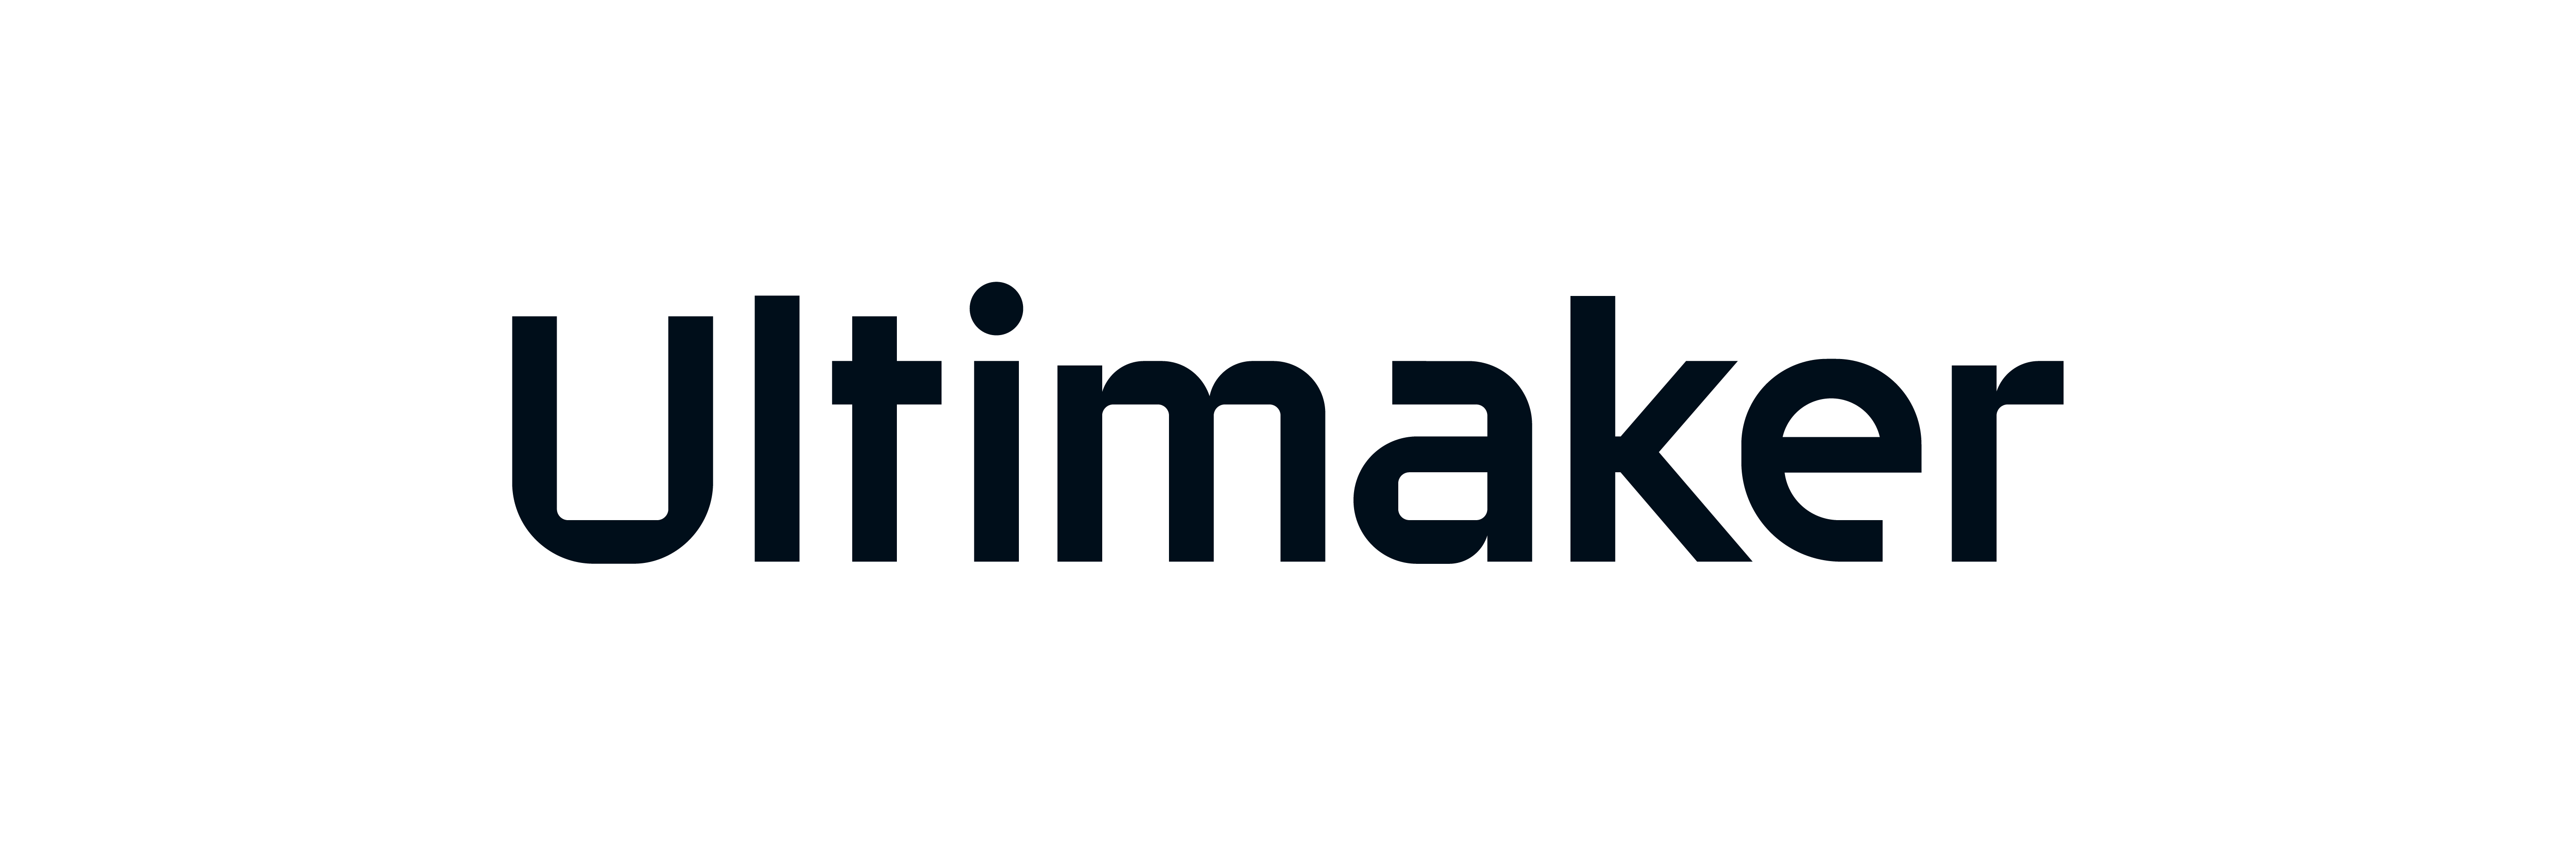 The new Ultimaker logo. Image via Ultimaker.